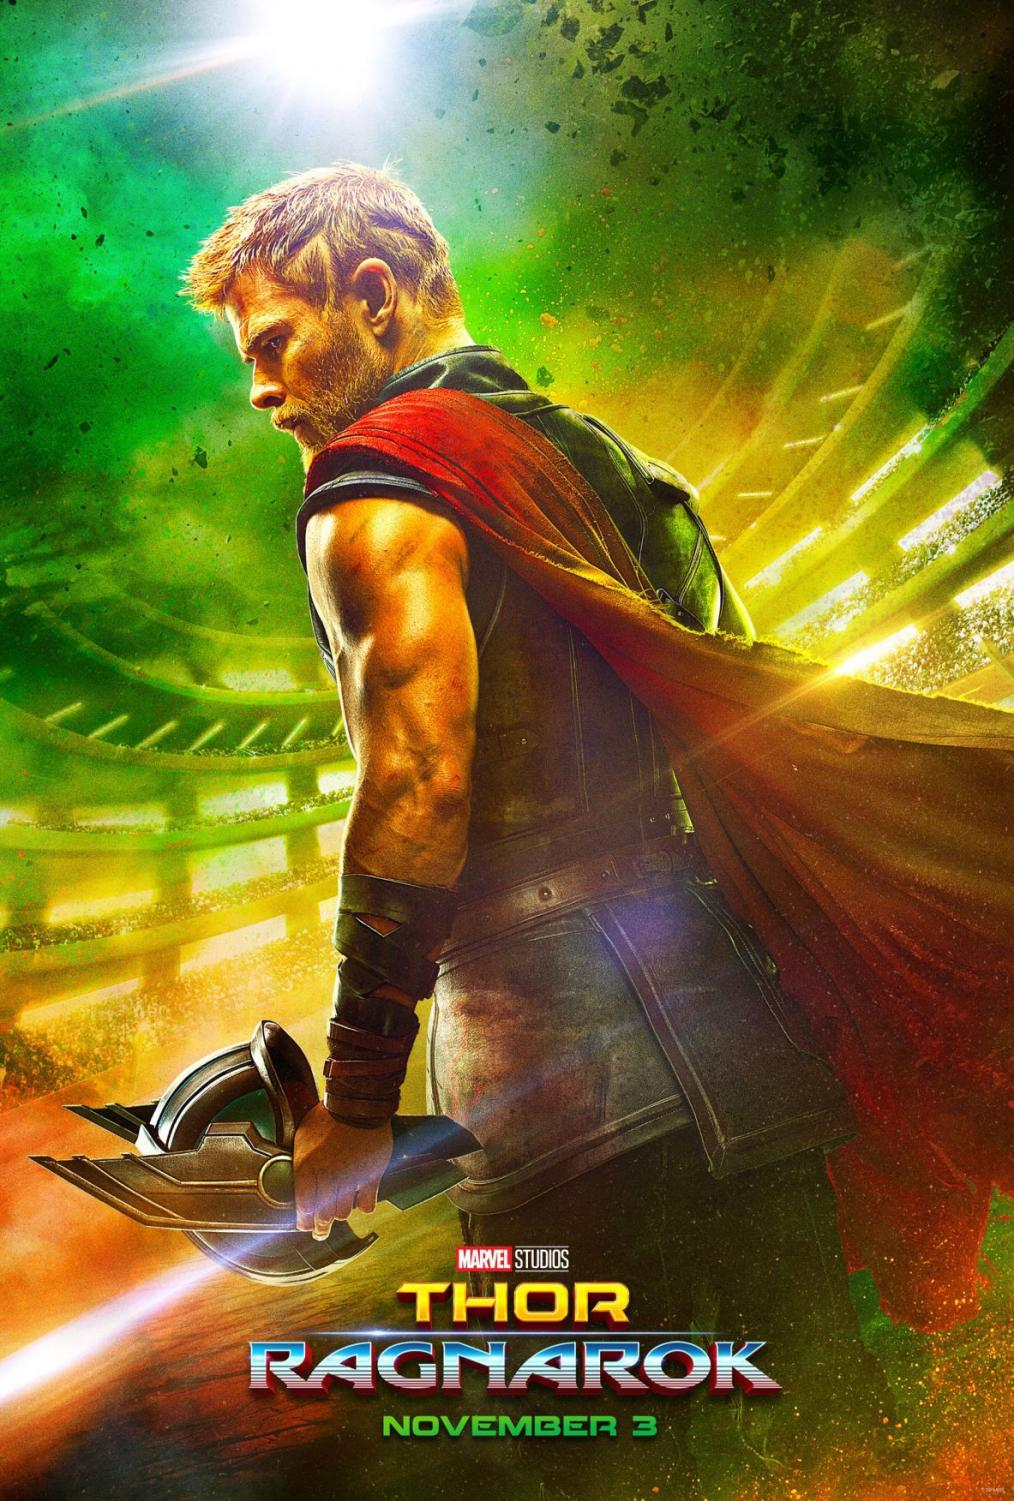 'Thor: Ragnarok' blends high science fiction with offbeat Kiwi comedy.